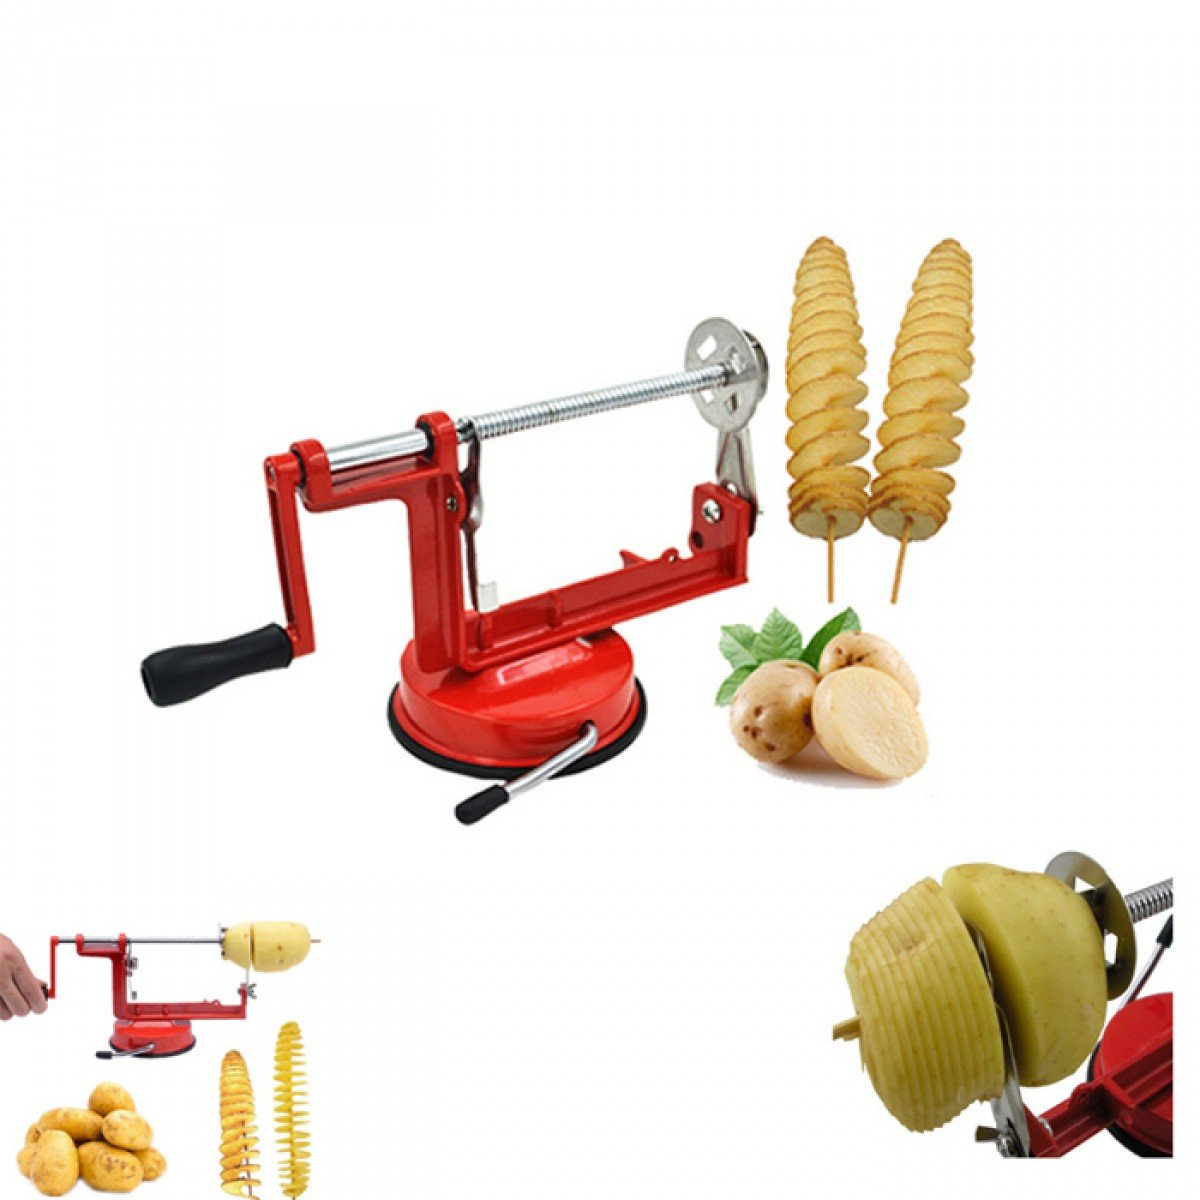 Potato Spiral Cutter Twisted Fruits Vegetable Slicer Stainless Steel